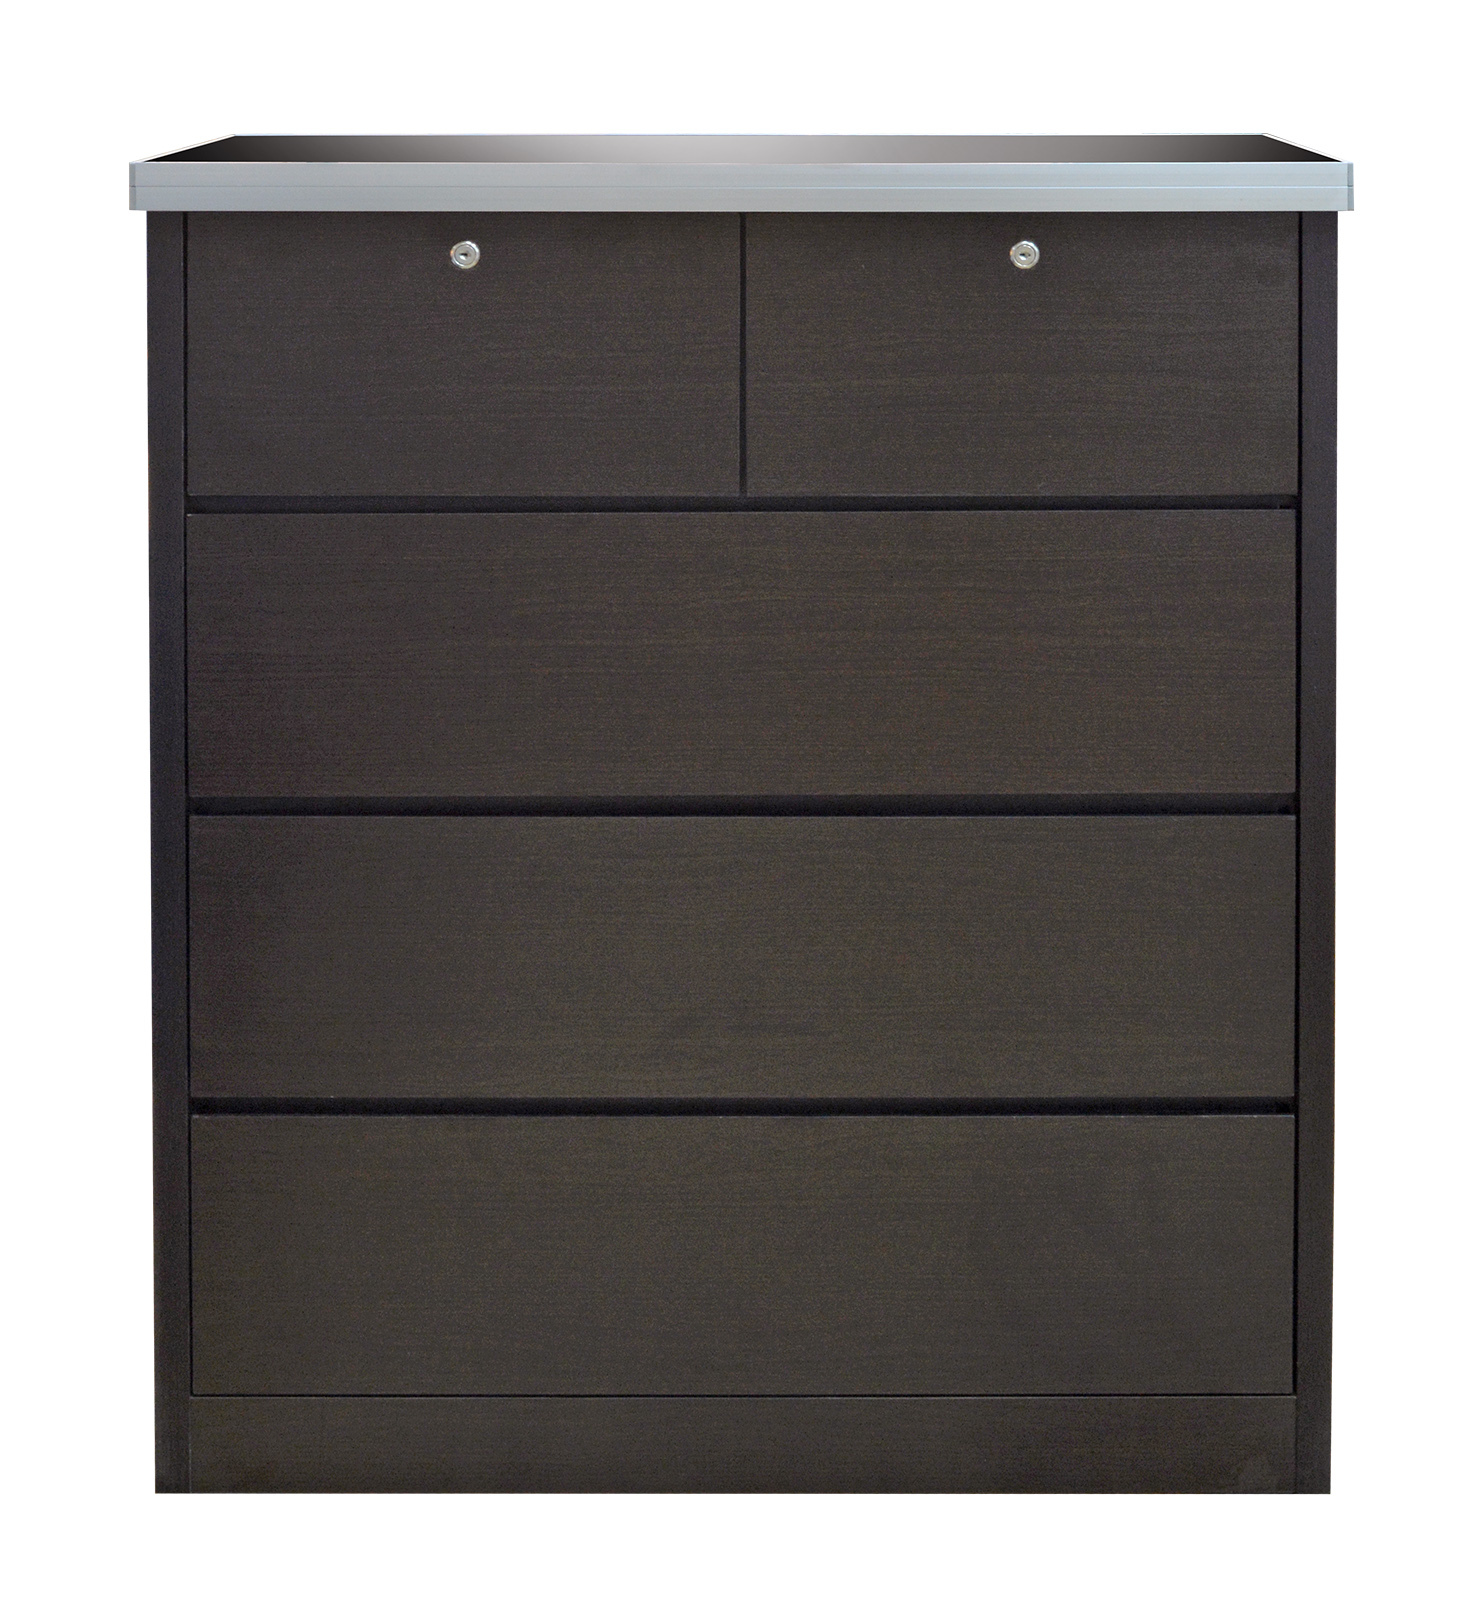 chest of drawer 8958 bigfile front.jpg